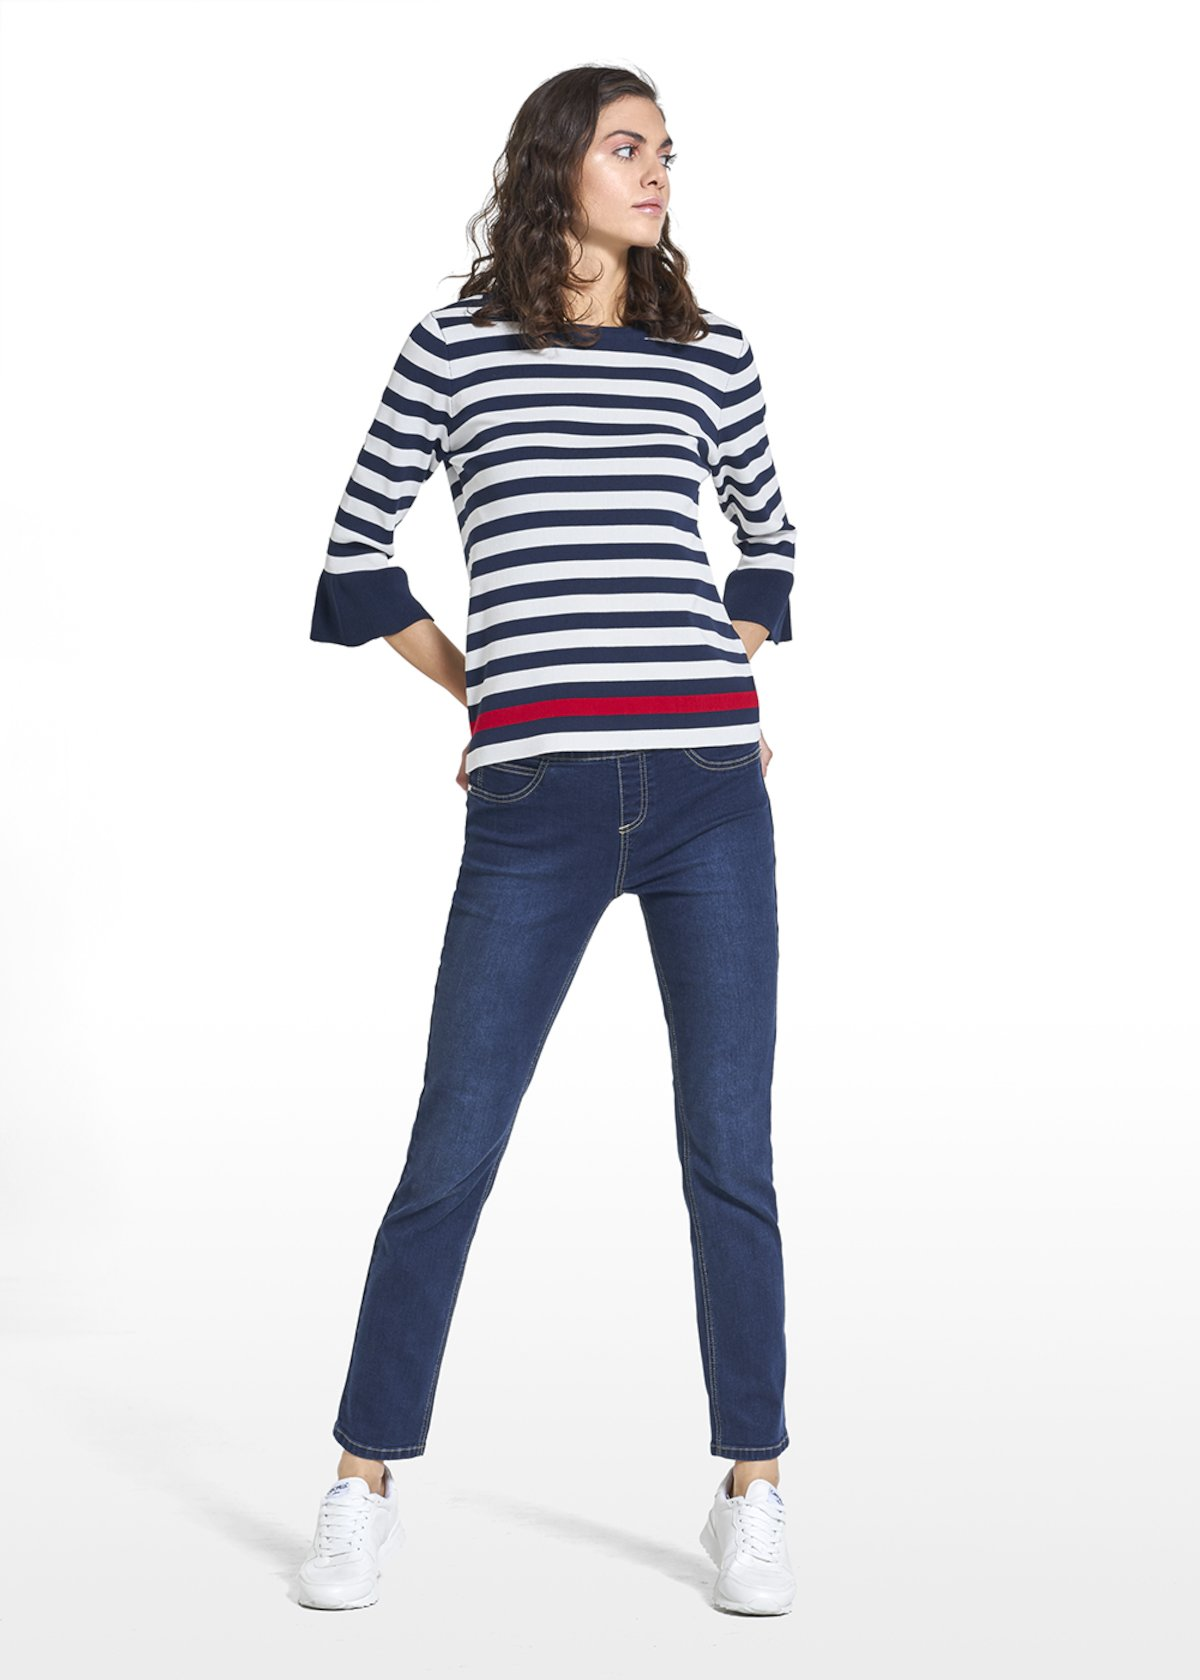 Marilyn printed striped jersey with ruched detail - White / Blue Stripes - Woman - Category image